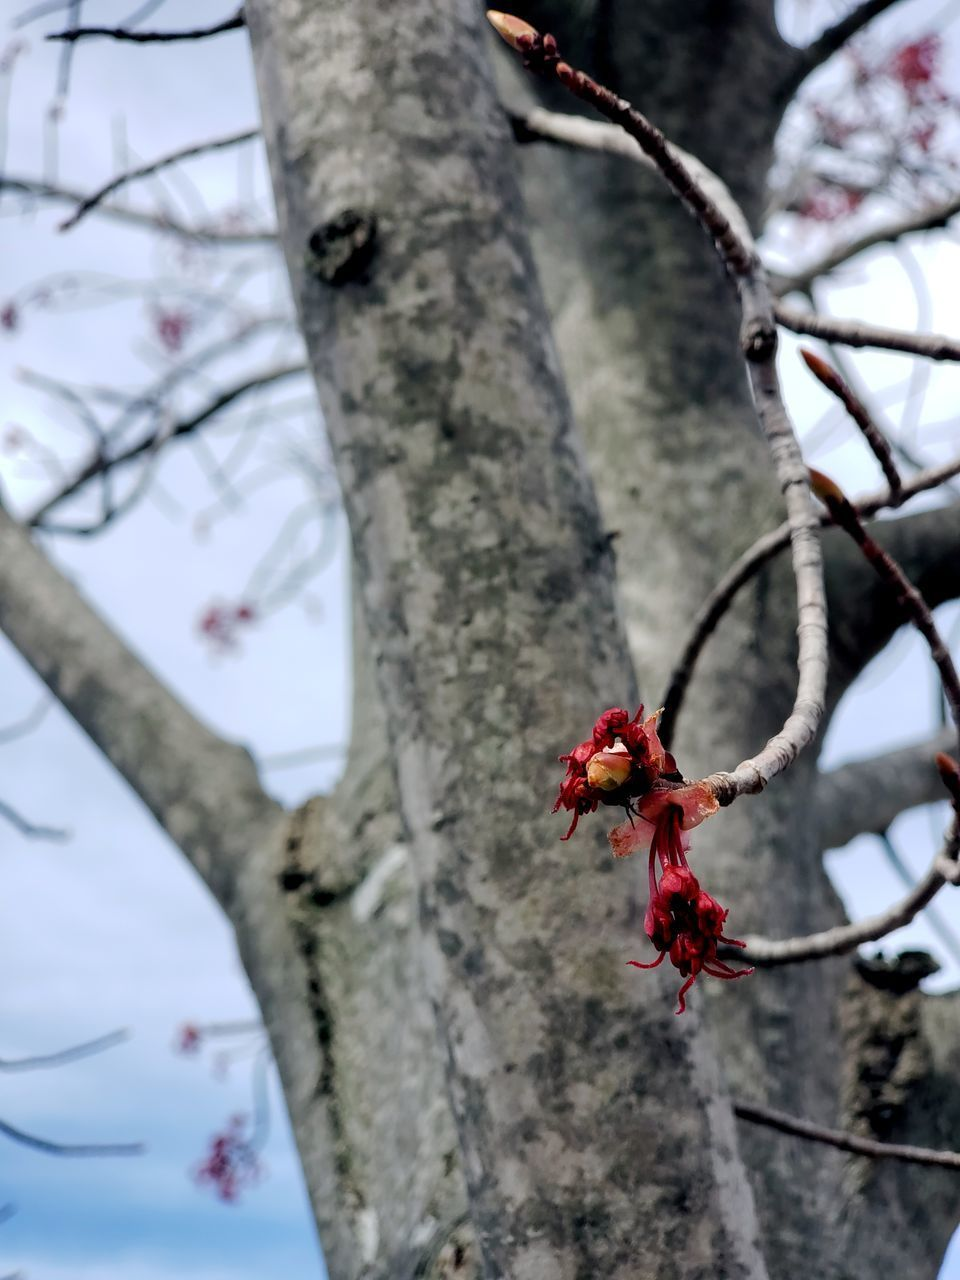 tree, plant, flower, branch, nature, flowering plant, no people, focus on foreground, red, growth, beauty in nature, day, tree trunk, close-up, low angle view, outdoors, trunk, fragility, freshness, vulnerability, springtime, cherry blossom, cherry tree